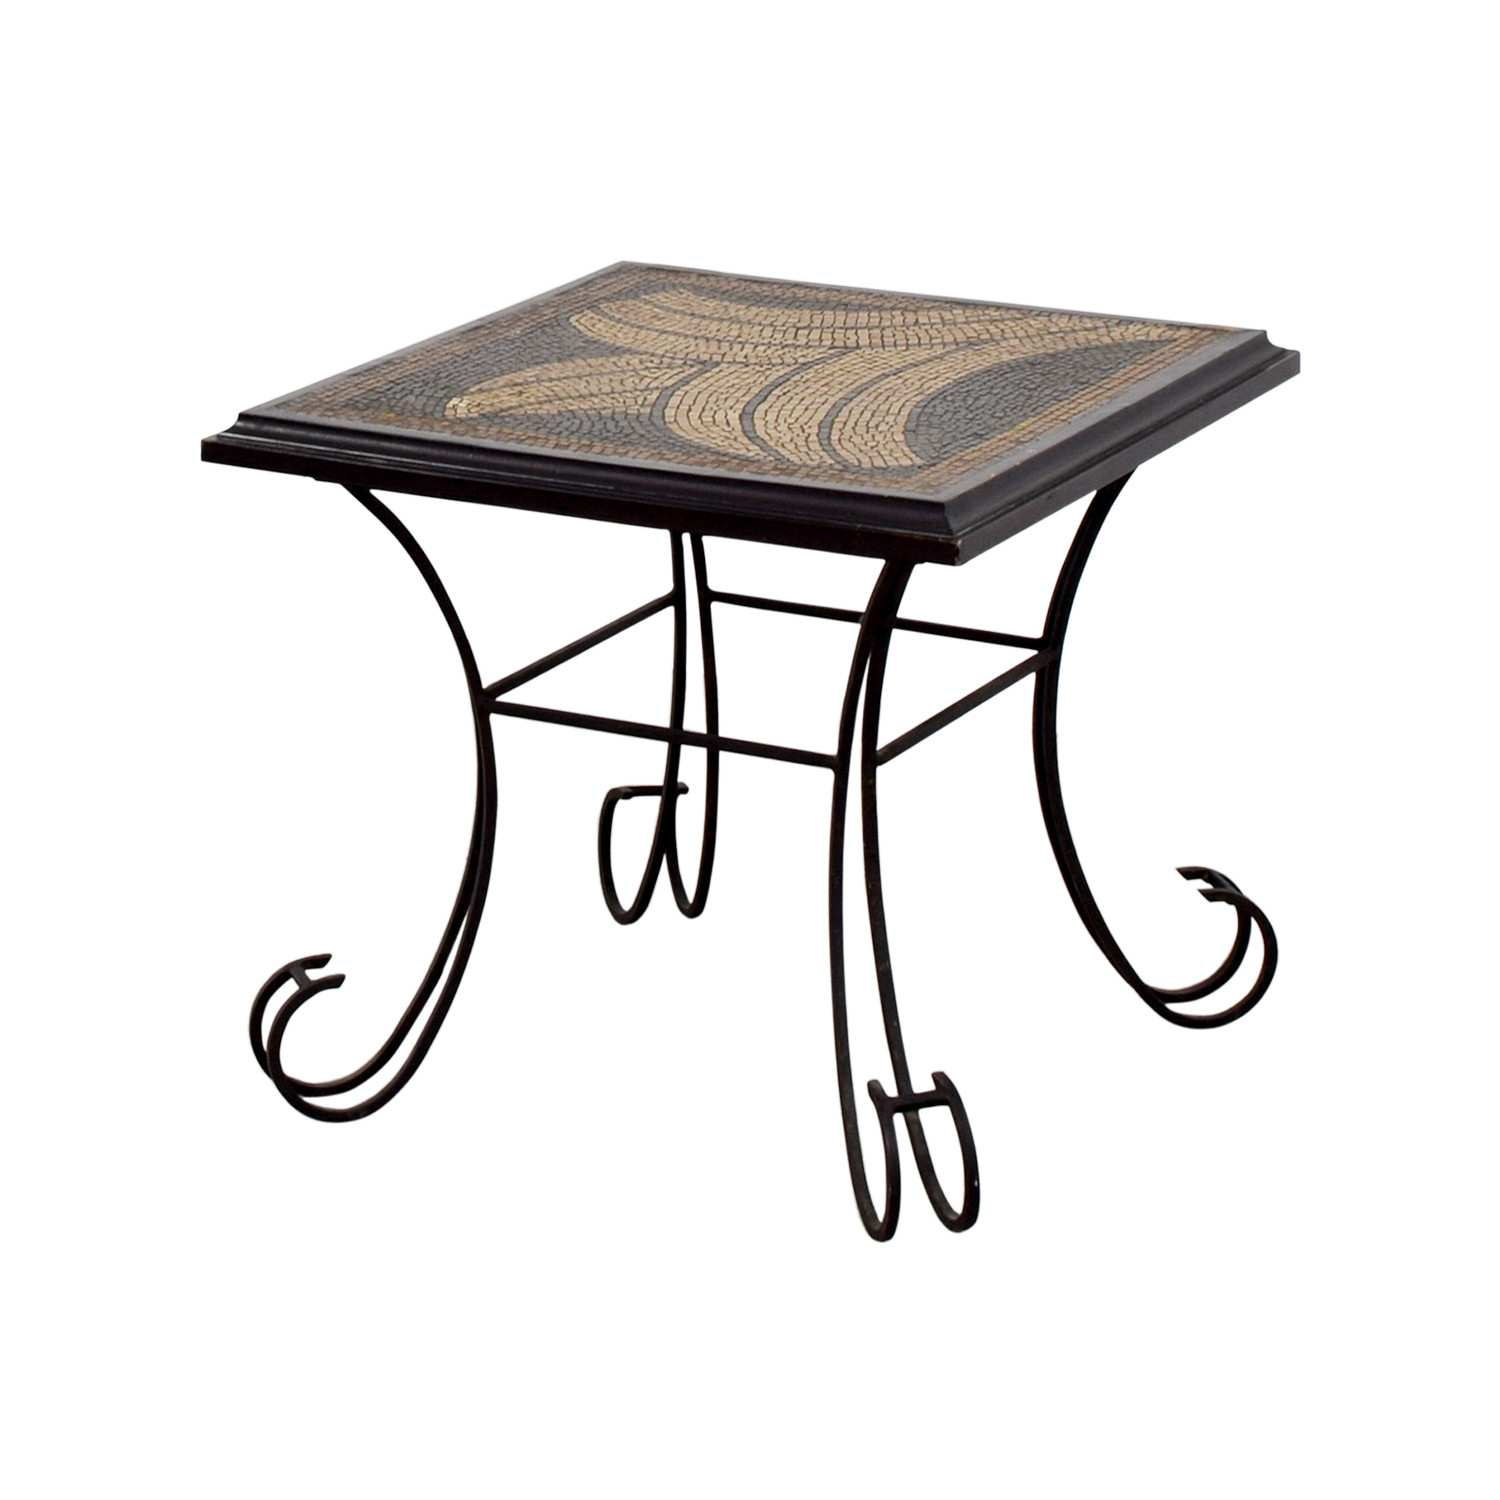 pier one accent tables for leaf table ideas trendy off imports hand painted anywhere bar height dining and chairs decorative boxes with lids pottery barn benchwright bunnings